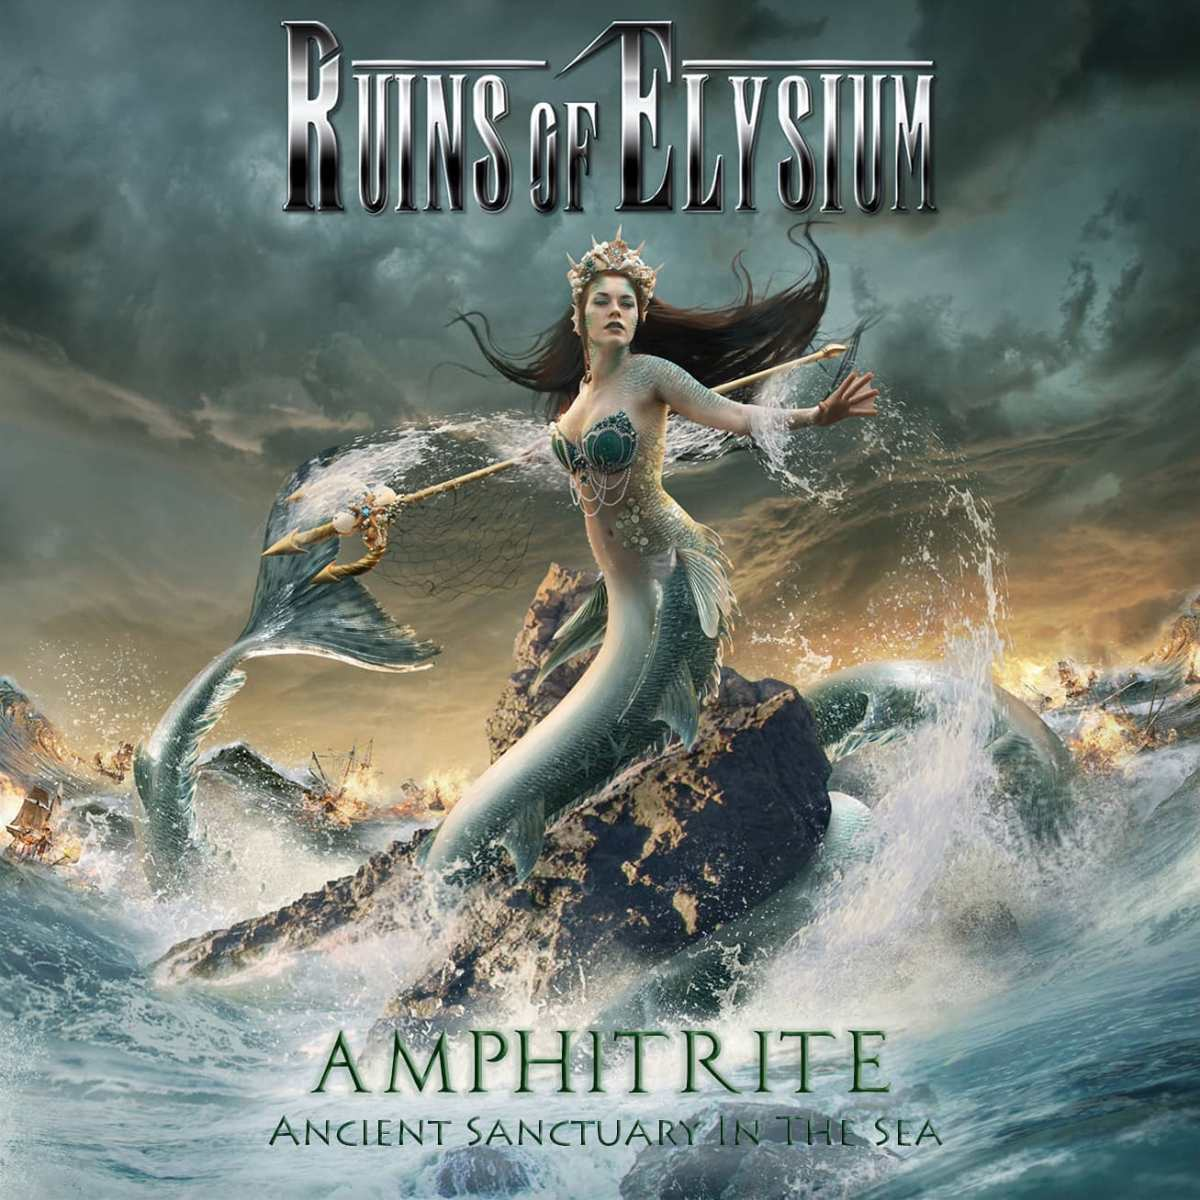 Ruins of Elysium – Amphitrite: Ancient Sanctuary in the Sea (Review)